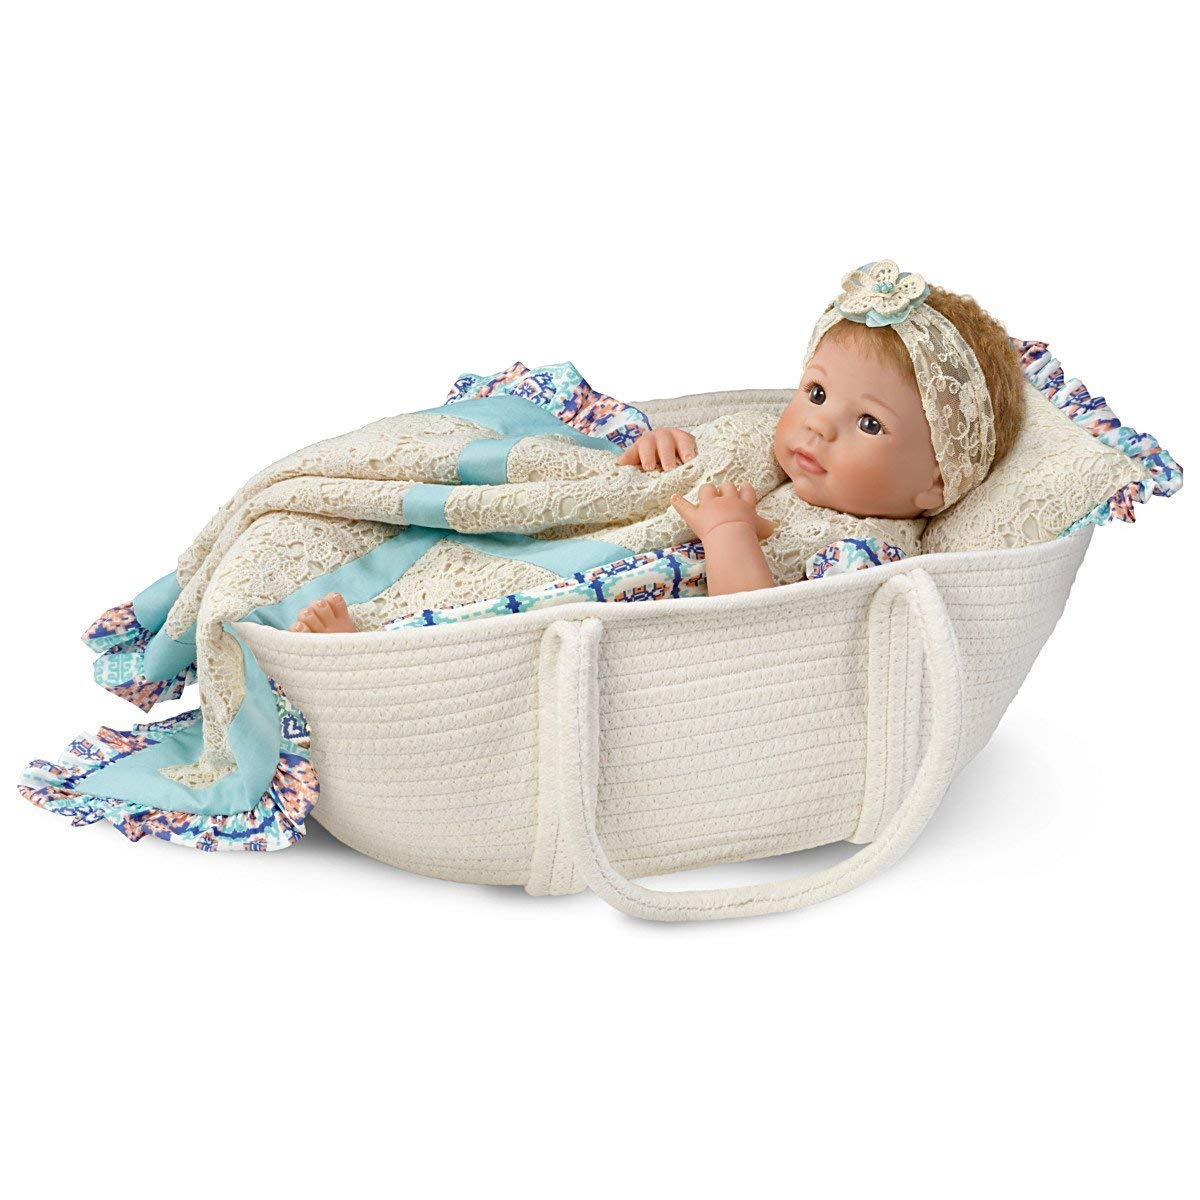 The Ashton-Drake Galleries Linda Murray Delilah Lifelike So Truly Real Baby Doll with Basket:by